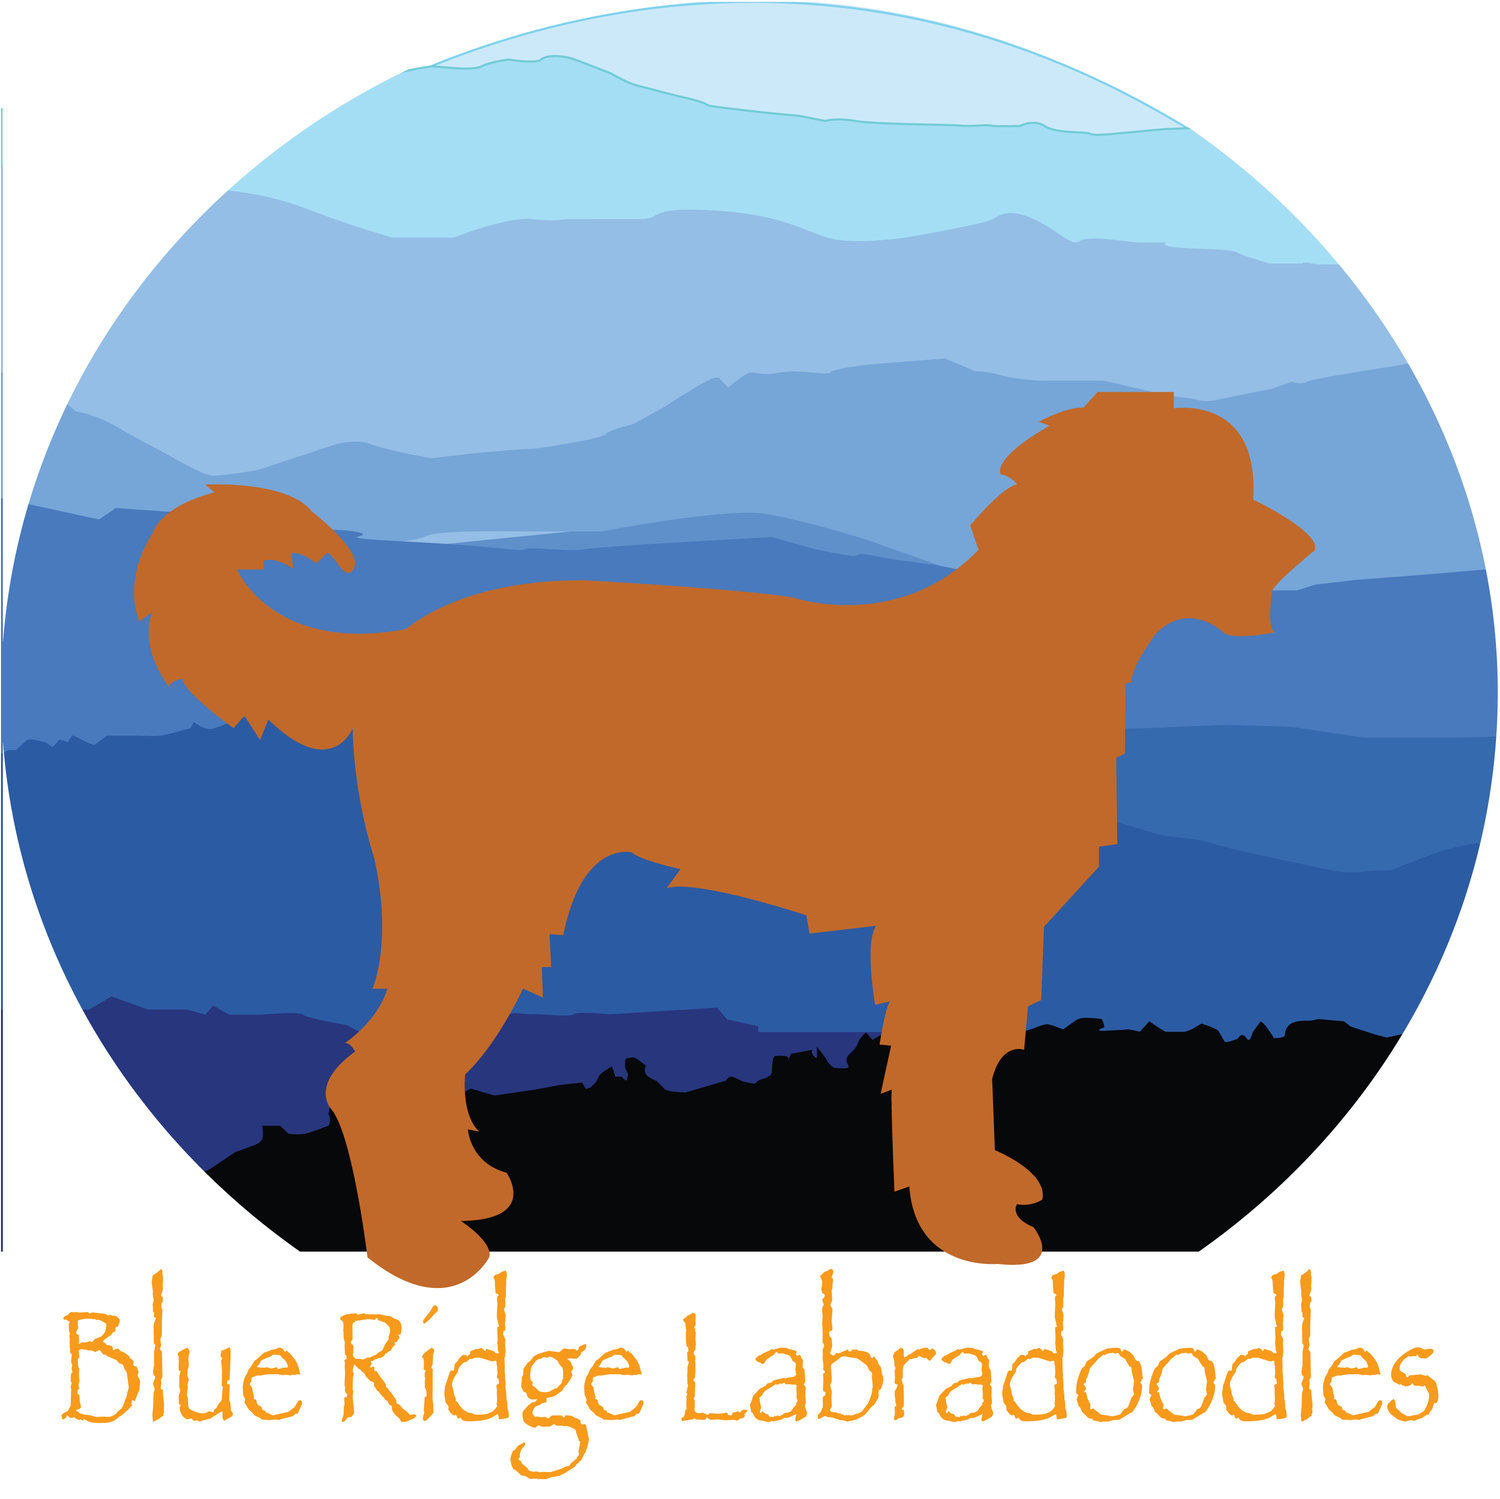 Blue Ridge Labradoodles